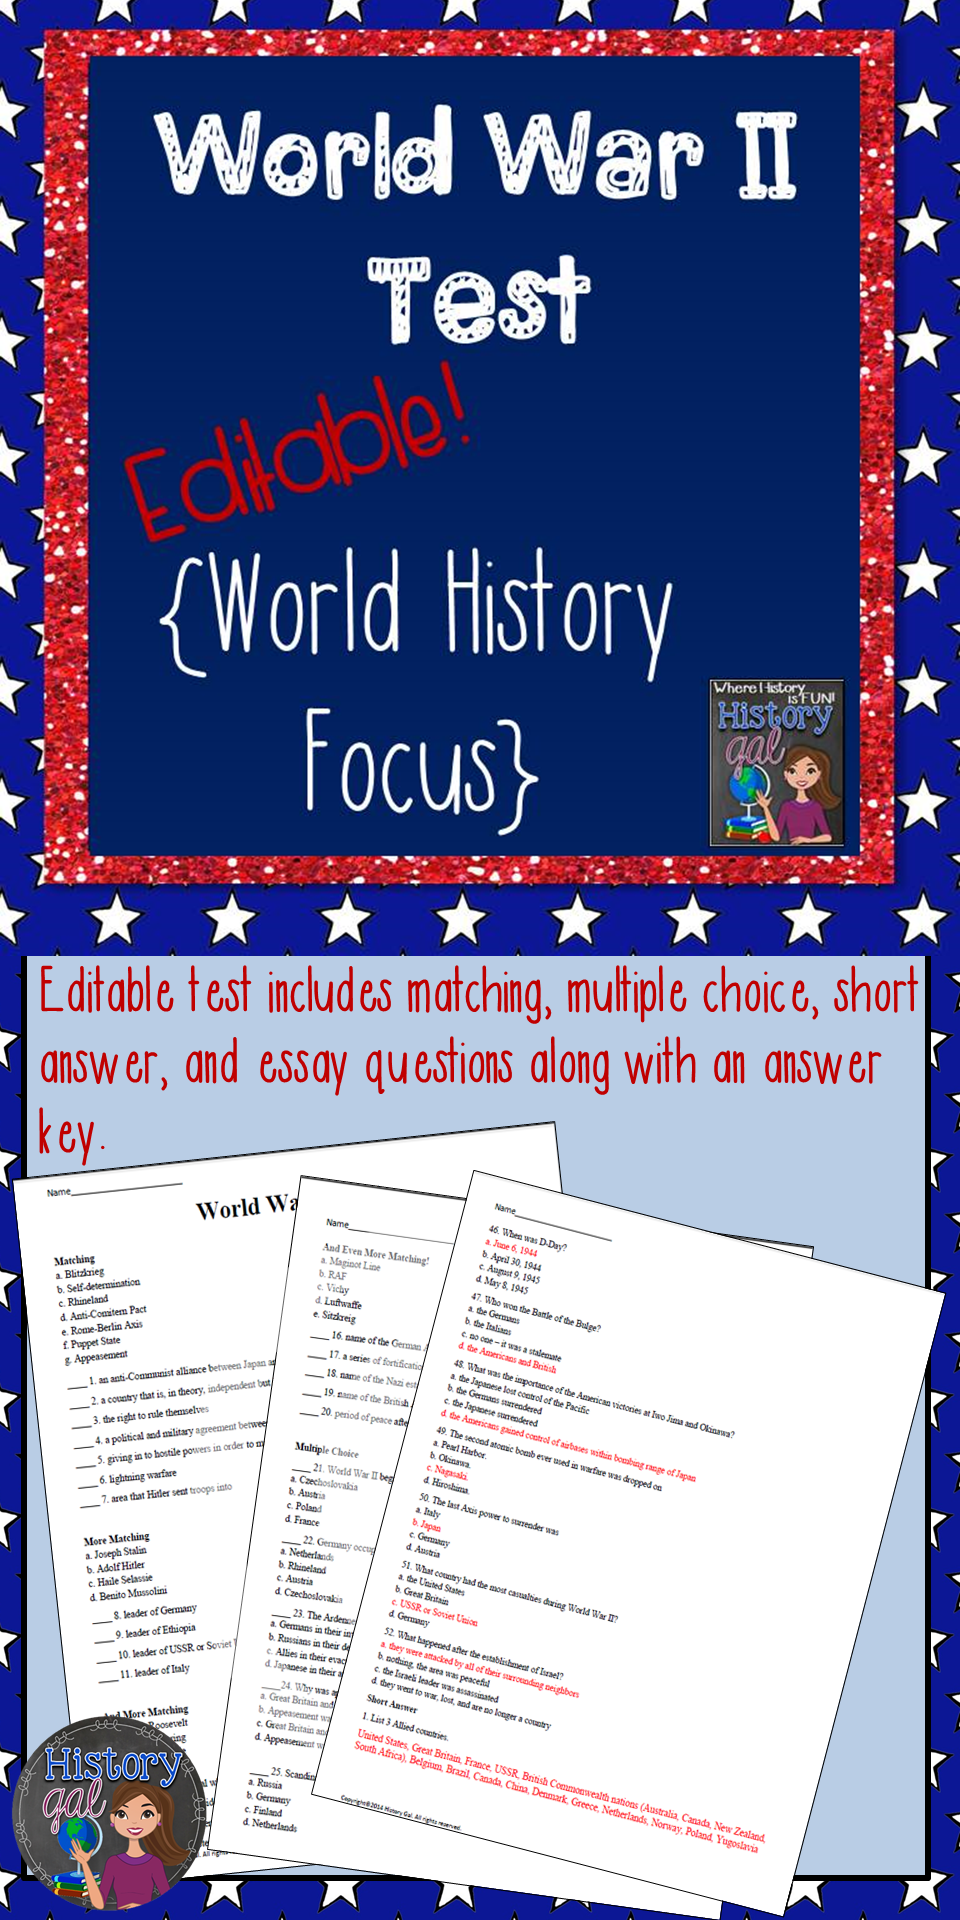 World War Ii Test Includes Matching Multiple Choice Short Answer  World War Ii Test Includes Matching Multiple Choice Short Answer And Essay  Questions Test Is Editable In Microsoft Word  And  Versions   Essay On Health also High School Dropout Essay  Ghostwriter